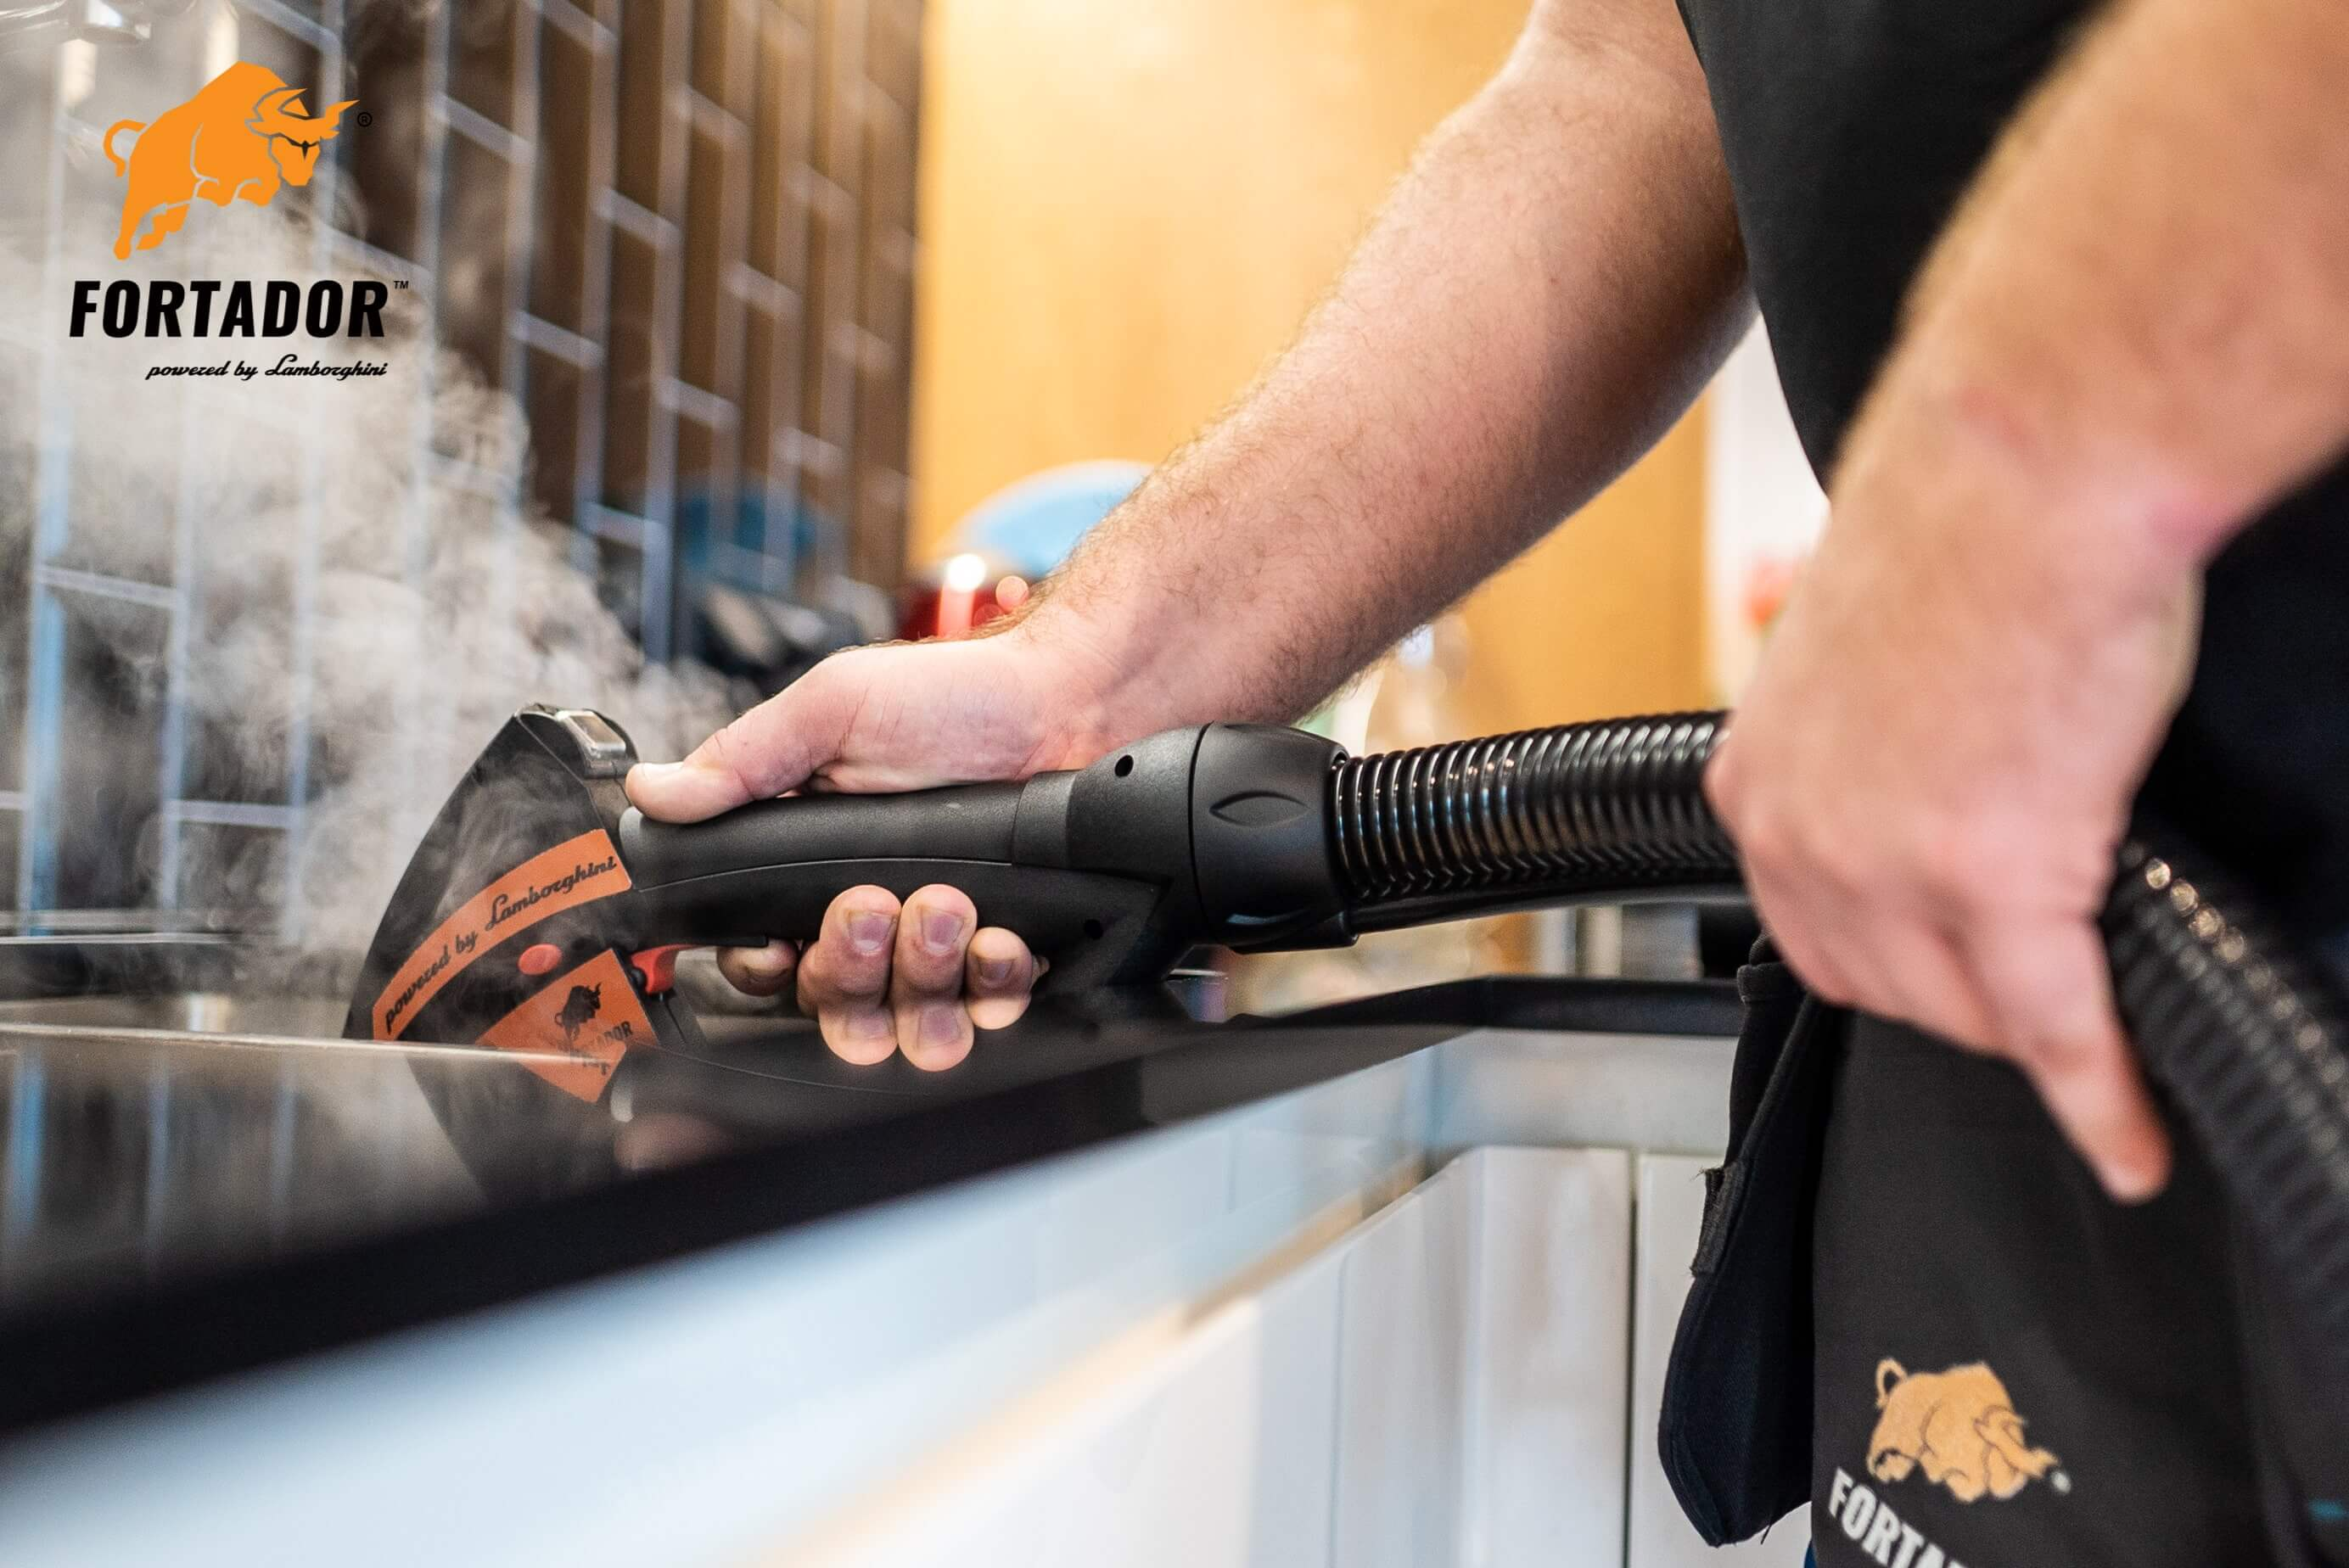 sanitizing of kitchen sink with steam cleaner